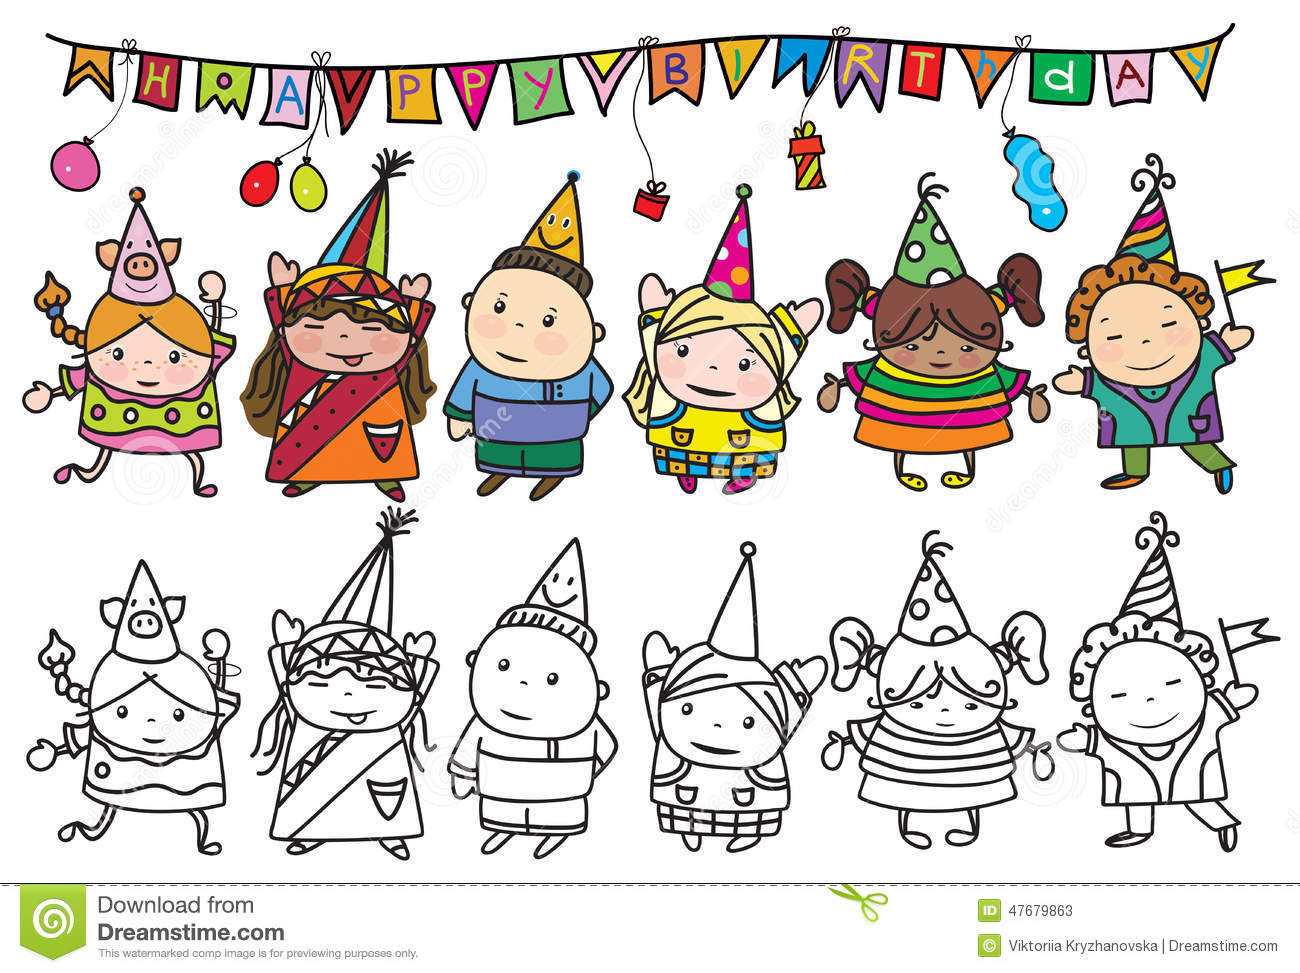 my birthday party drawing ; vector-group-children-birthday-party-background-my-creative-handdrawing-you-can-use-kids-design-etc-made-47679863